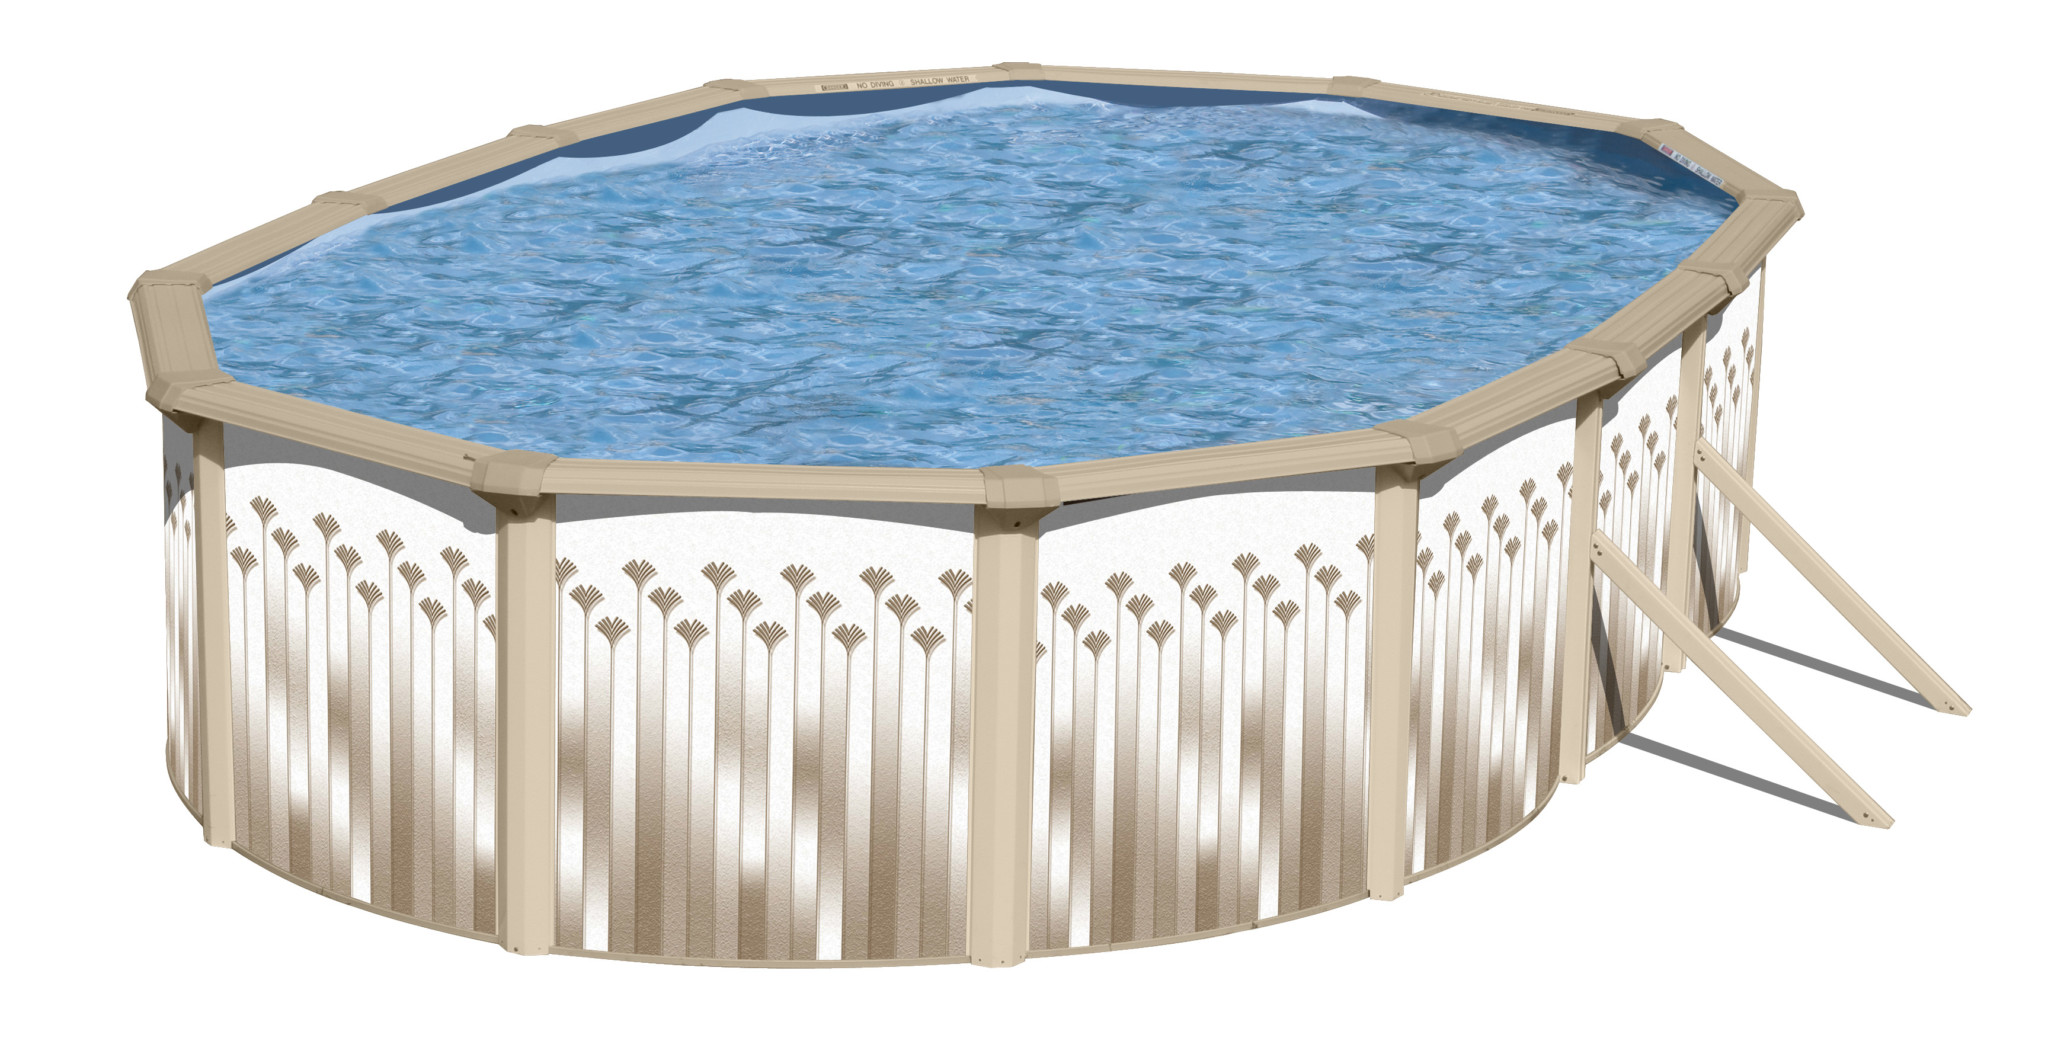 swimming pool discounters18\'X33\' Oval OCEAN up to 6\' Deep Pool ...